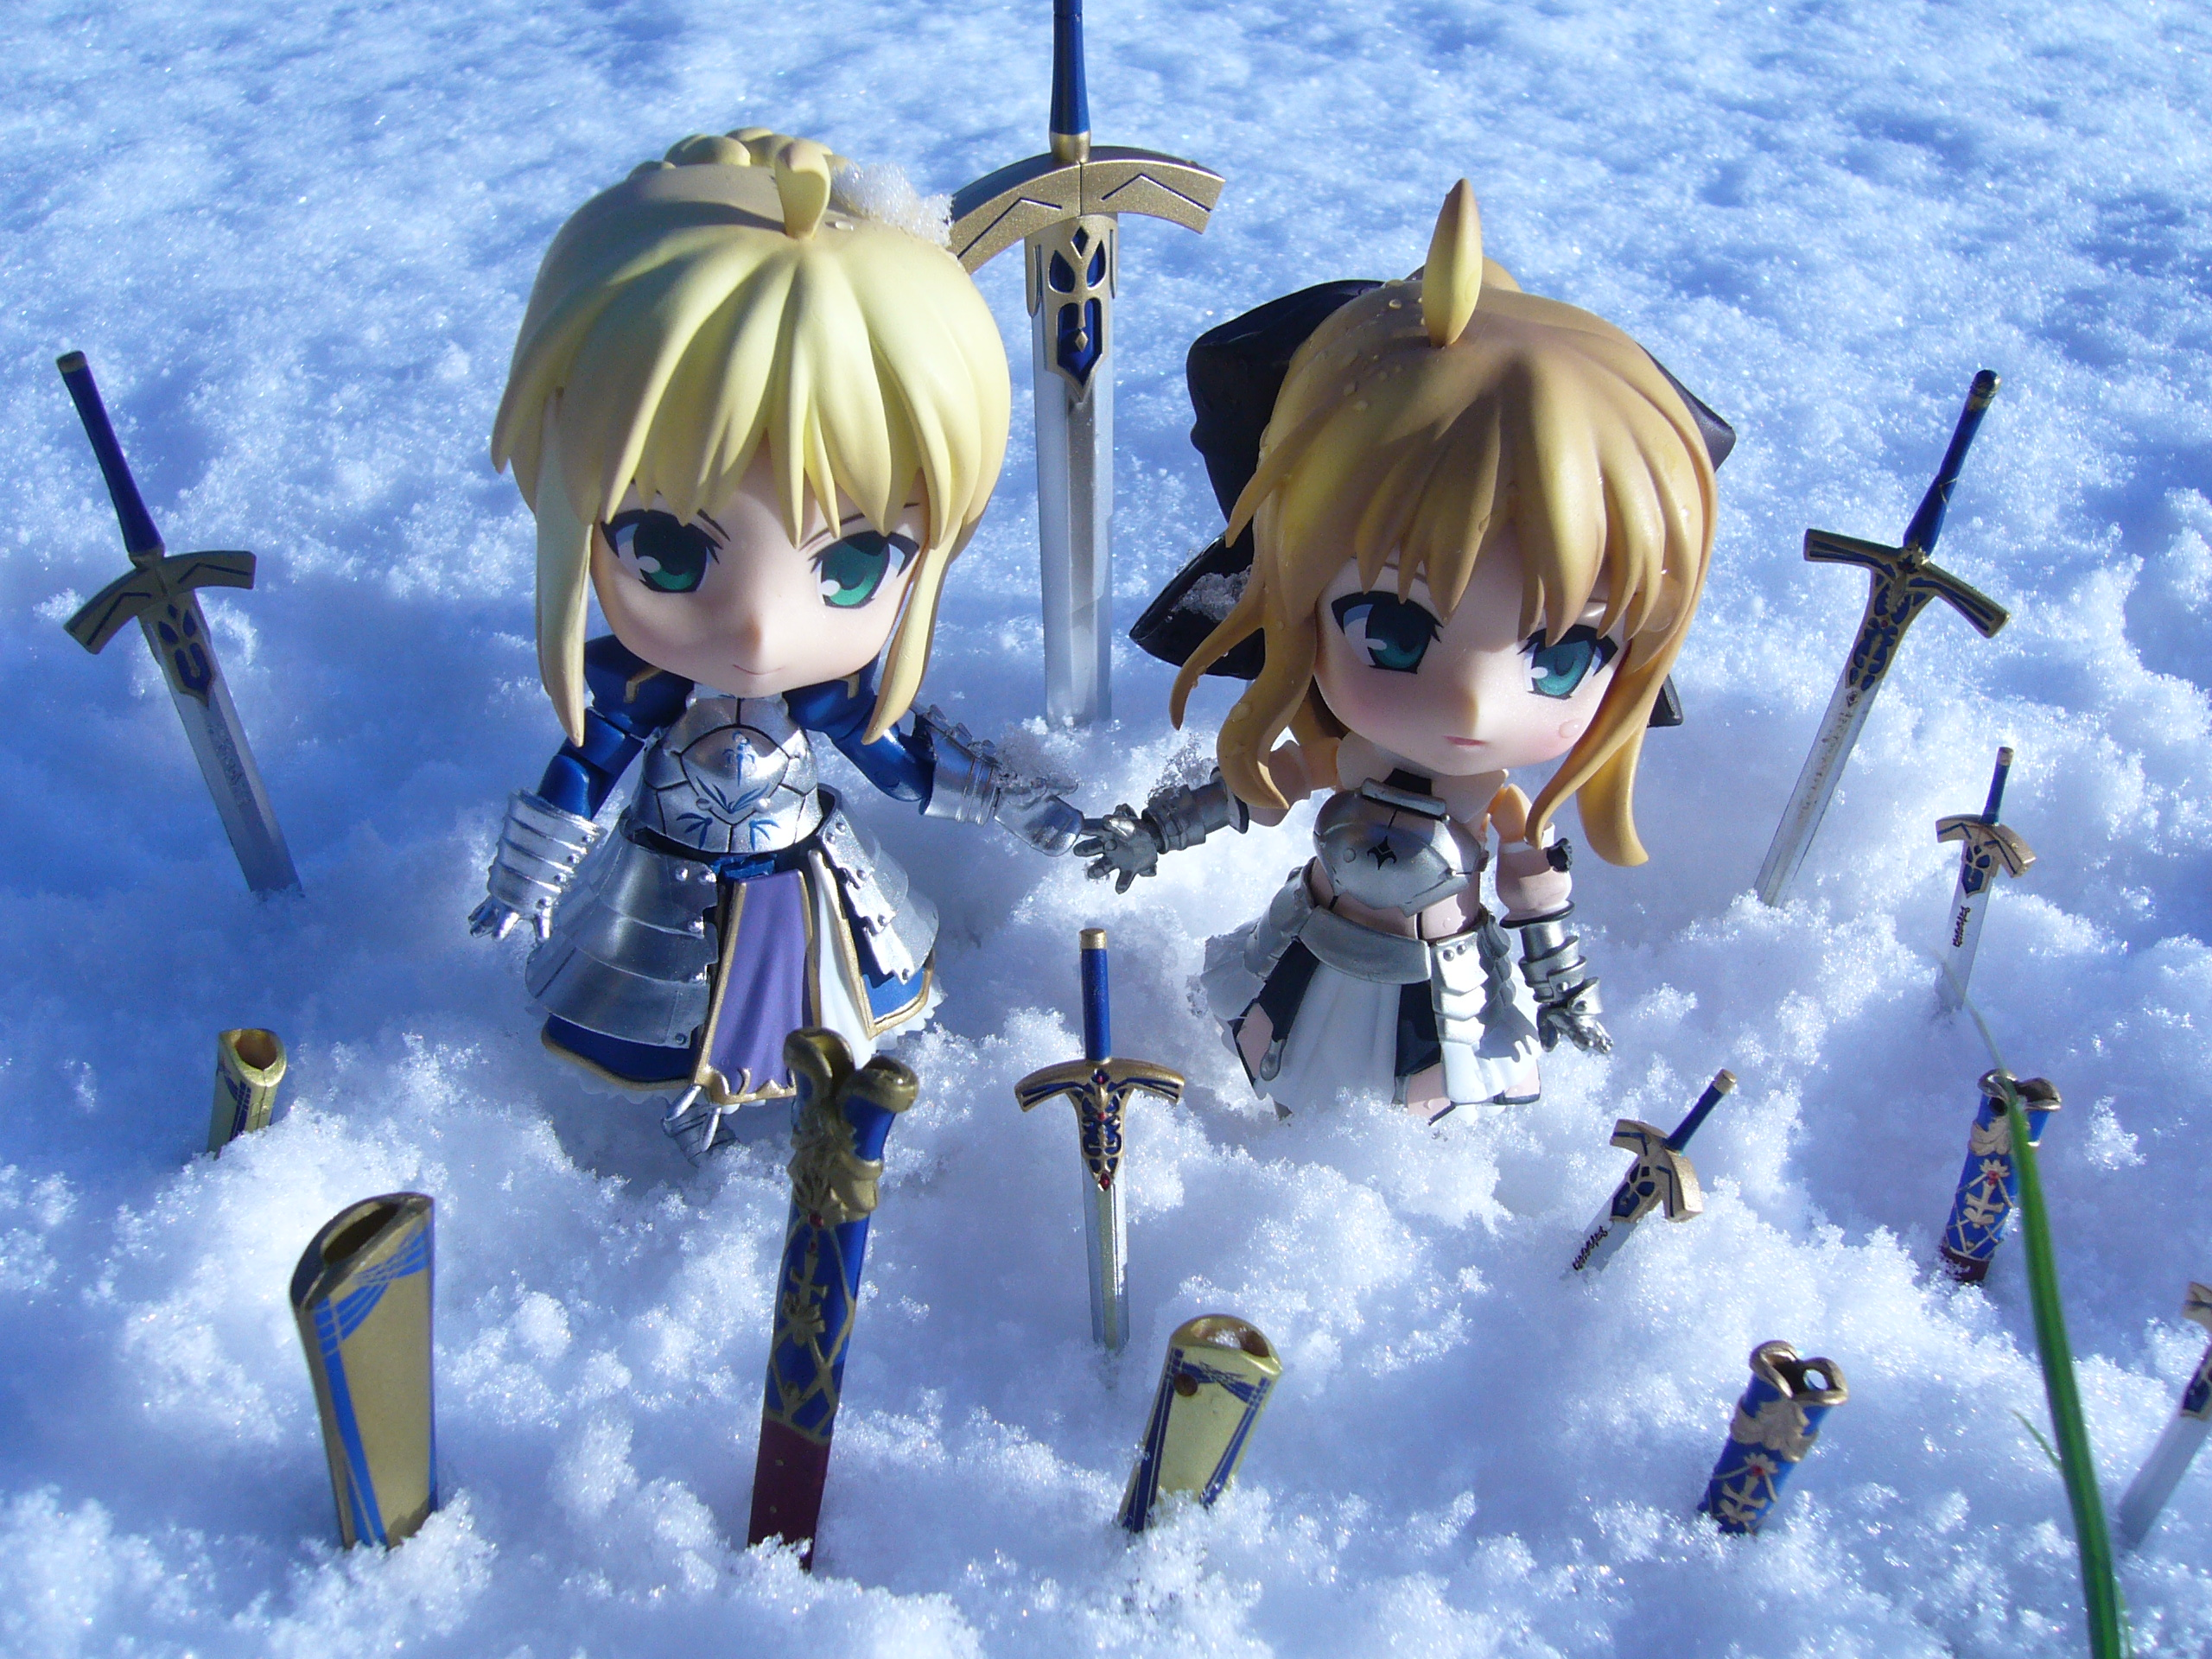 nendoroid saber saber_lily good_smile_company fate/stay_night nendoron fate/unlimited_codes oda_tsuyoshi takano_meishi